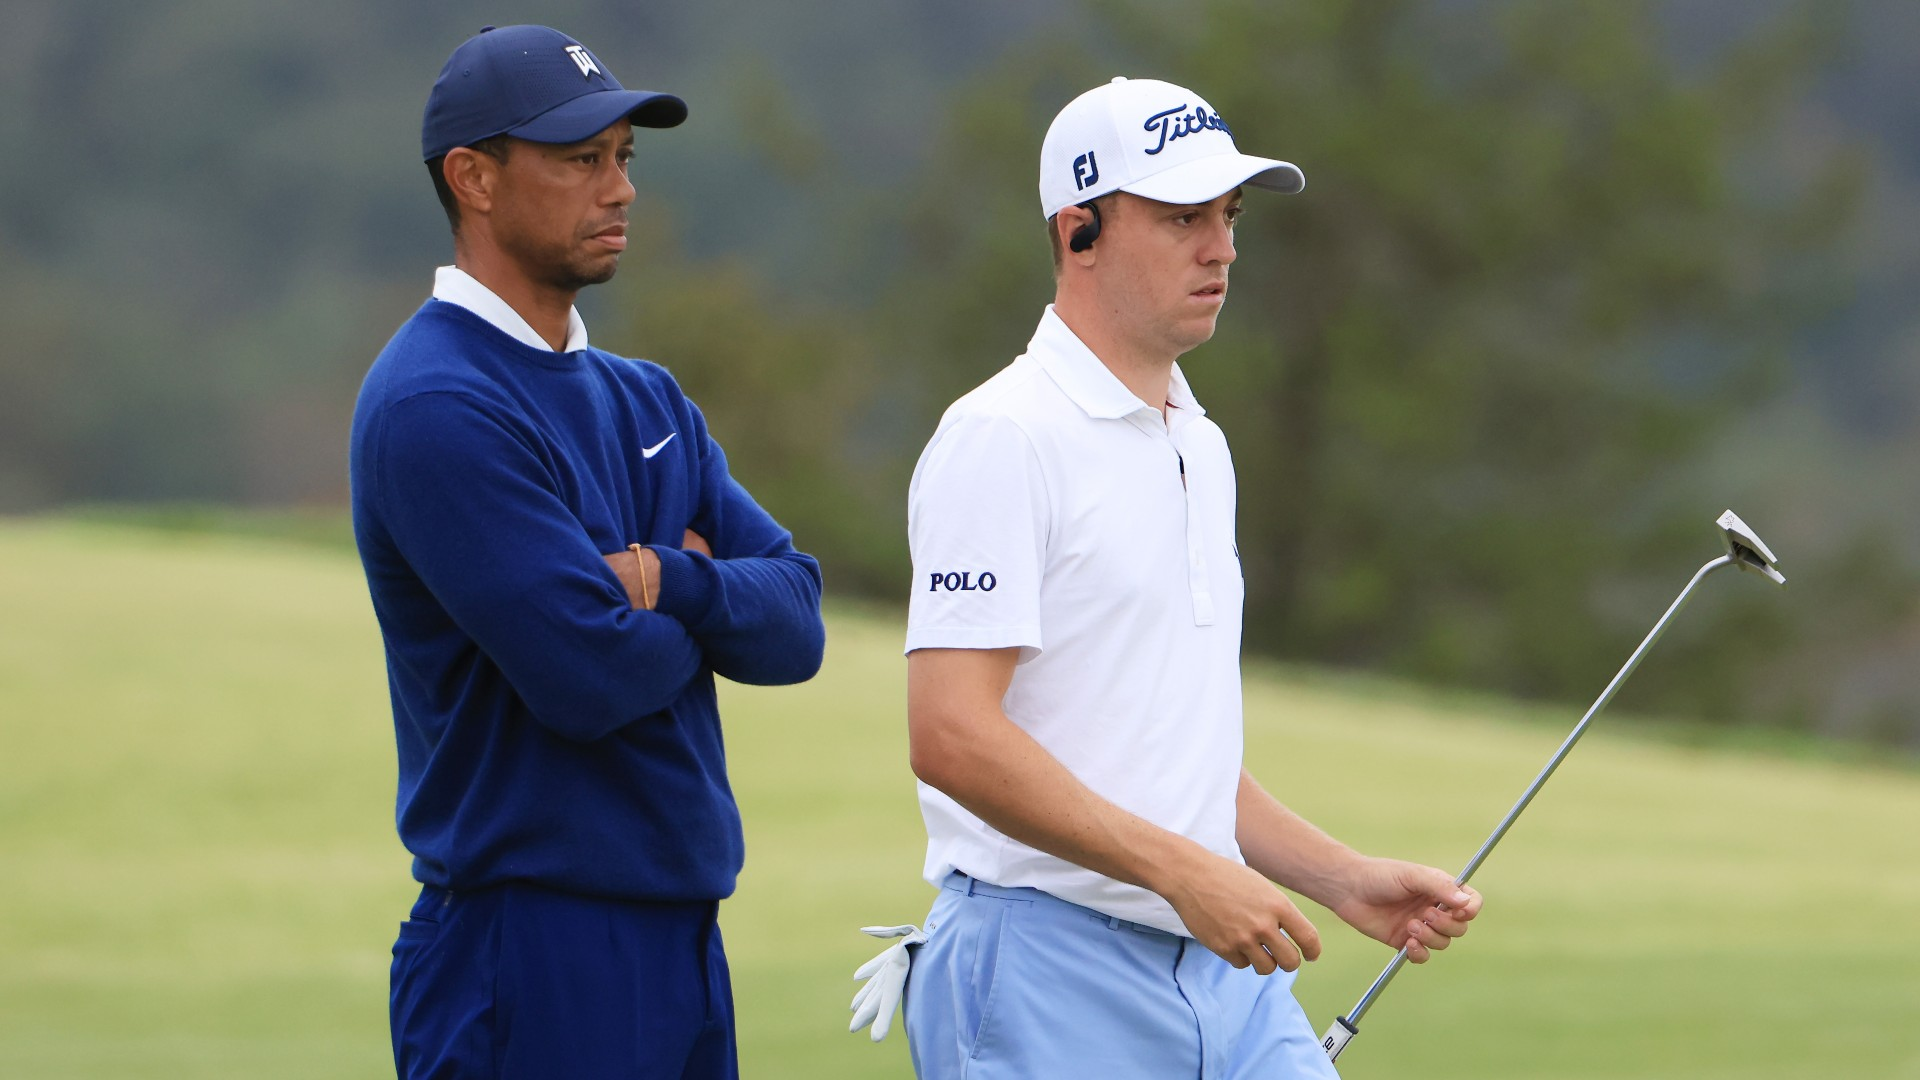 Justin Thomas said Tiger Woods helped him regain form in the difficult start to 2021